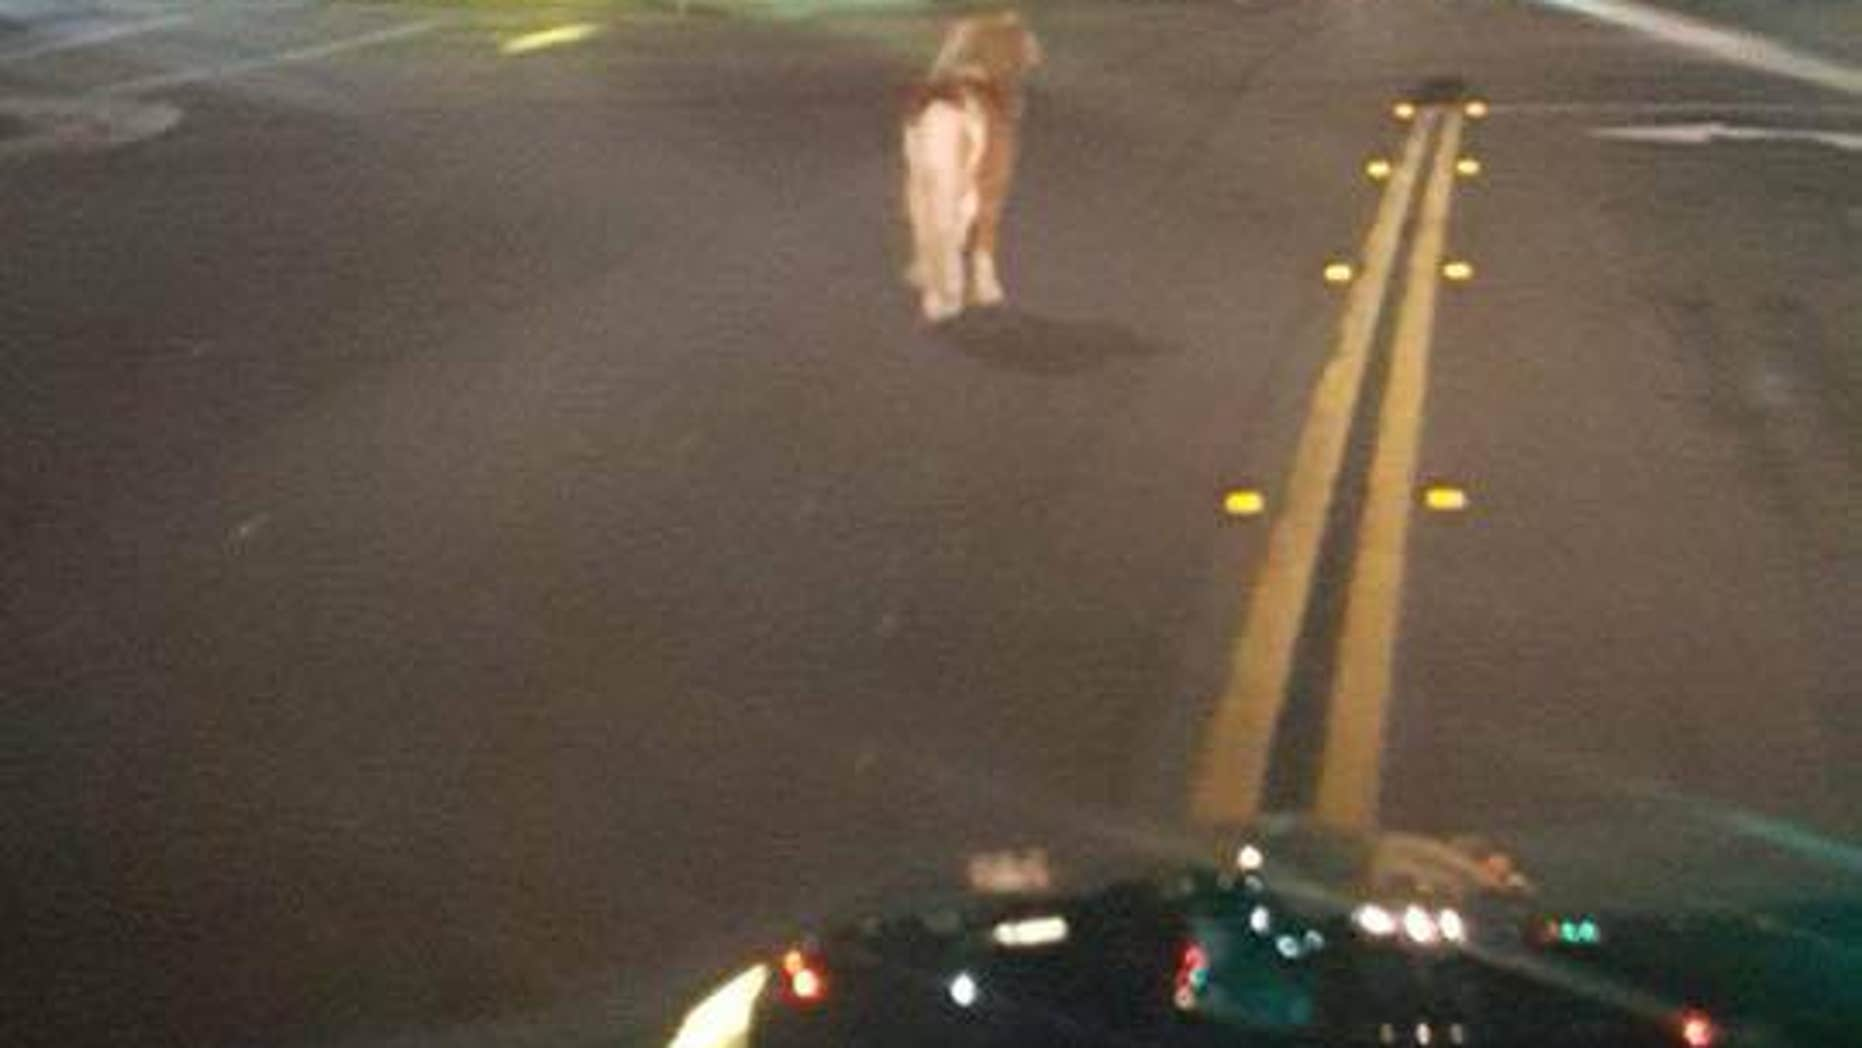 A pony was spotted out and about in a California city on Saturday.